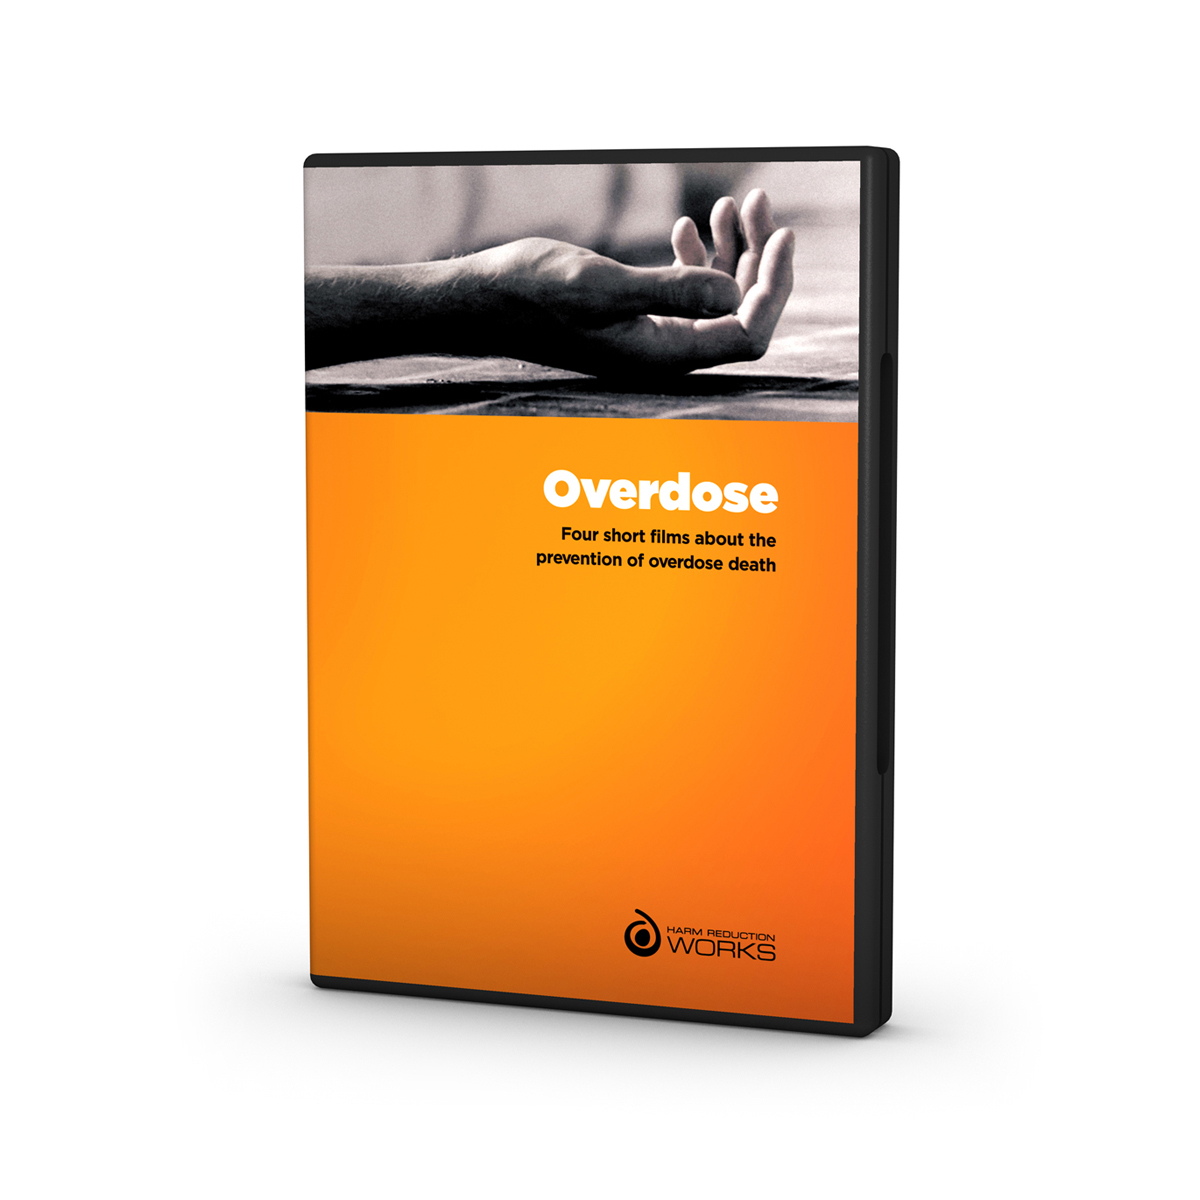 DVD: Overdose – 4 short films